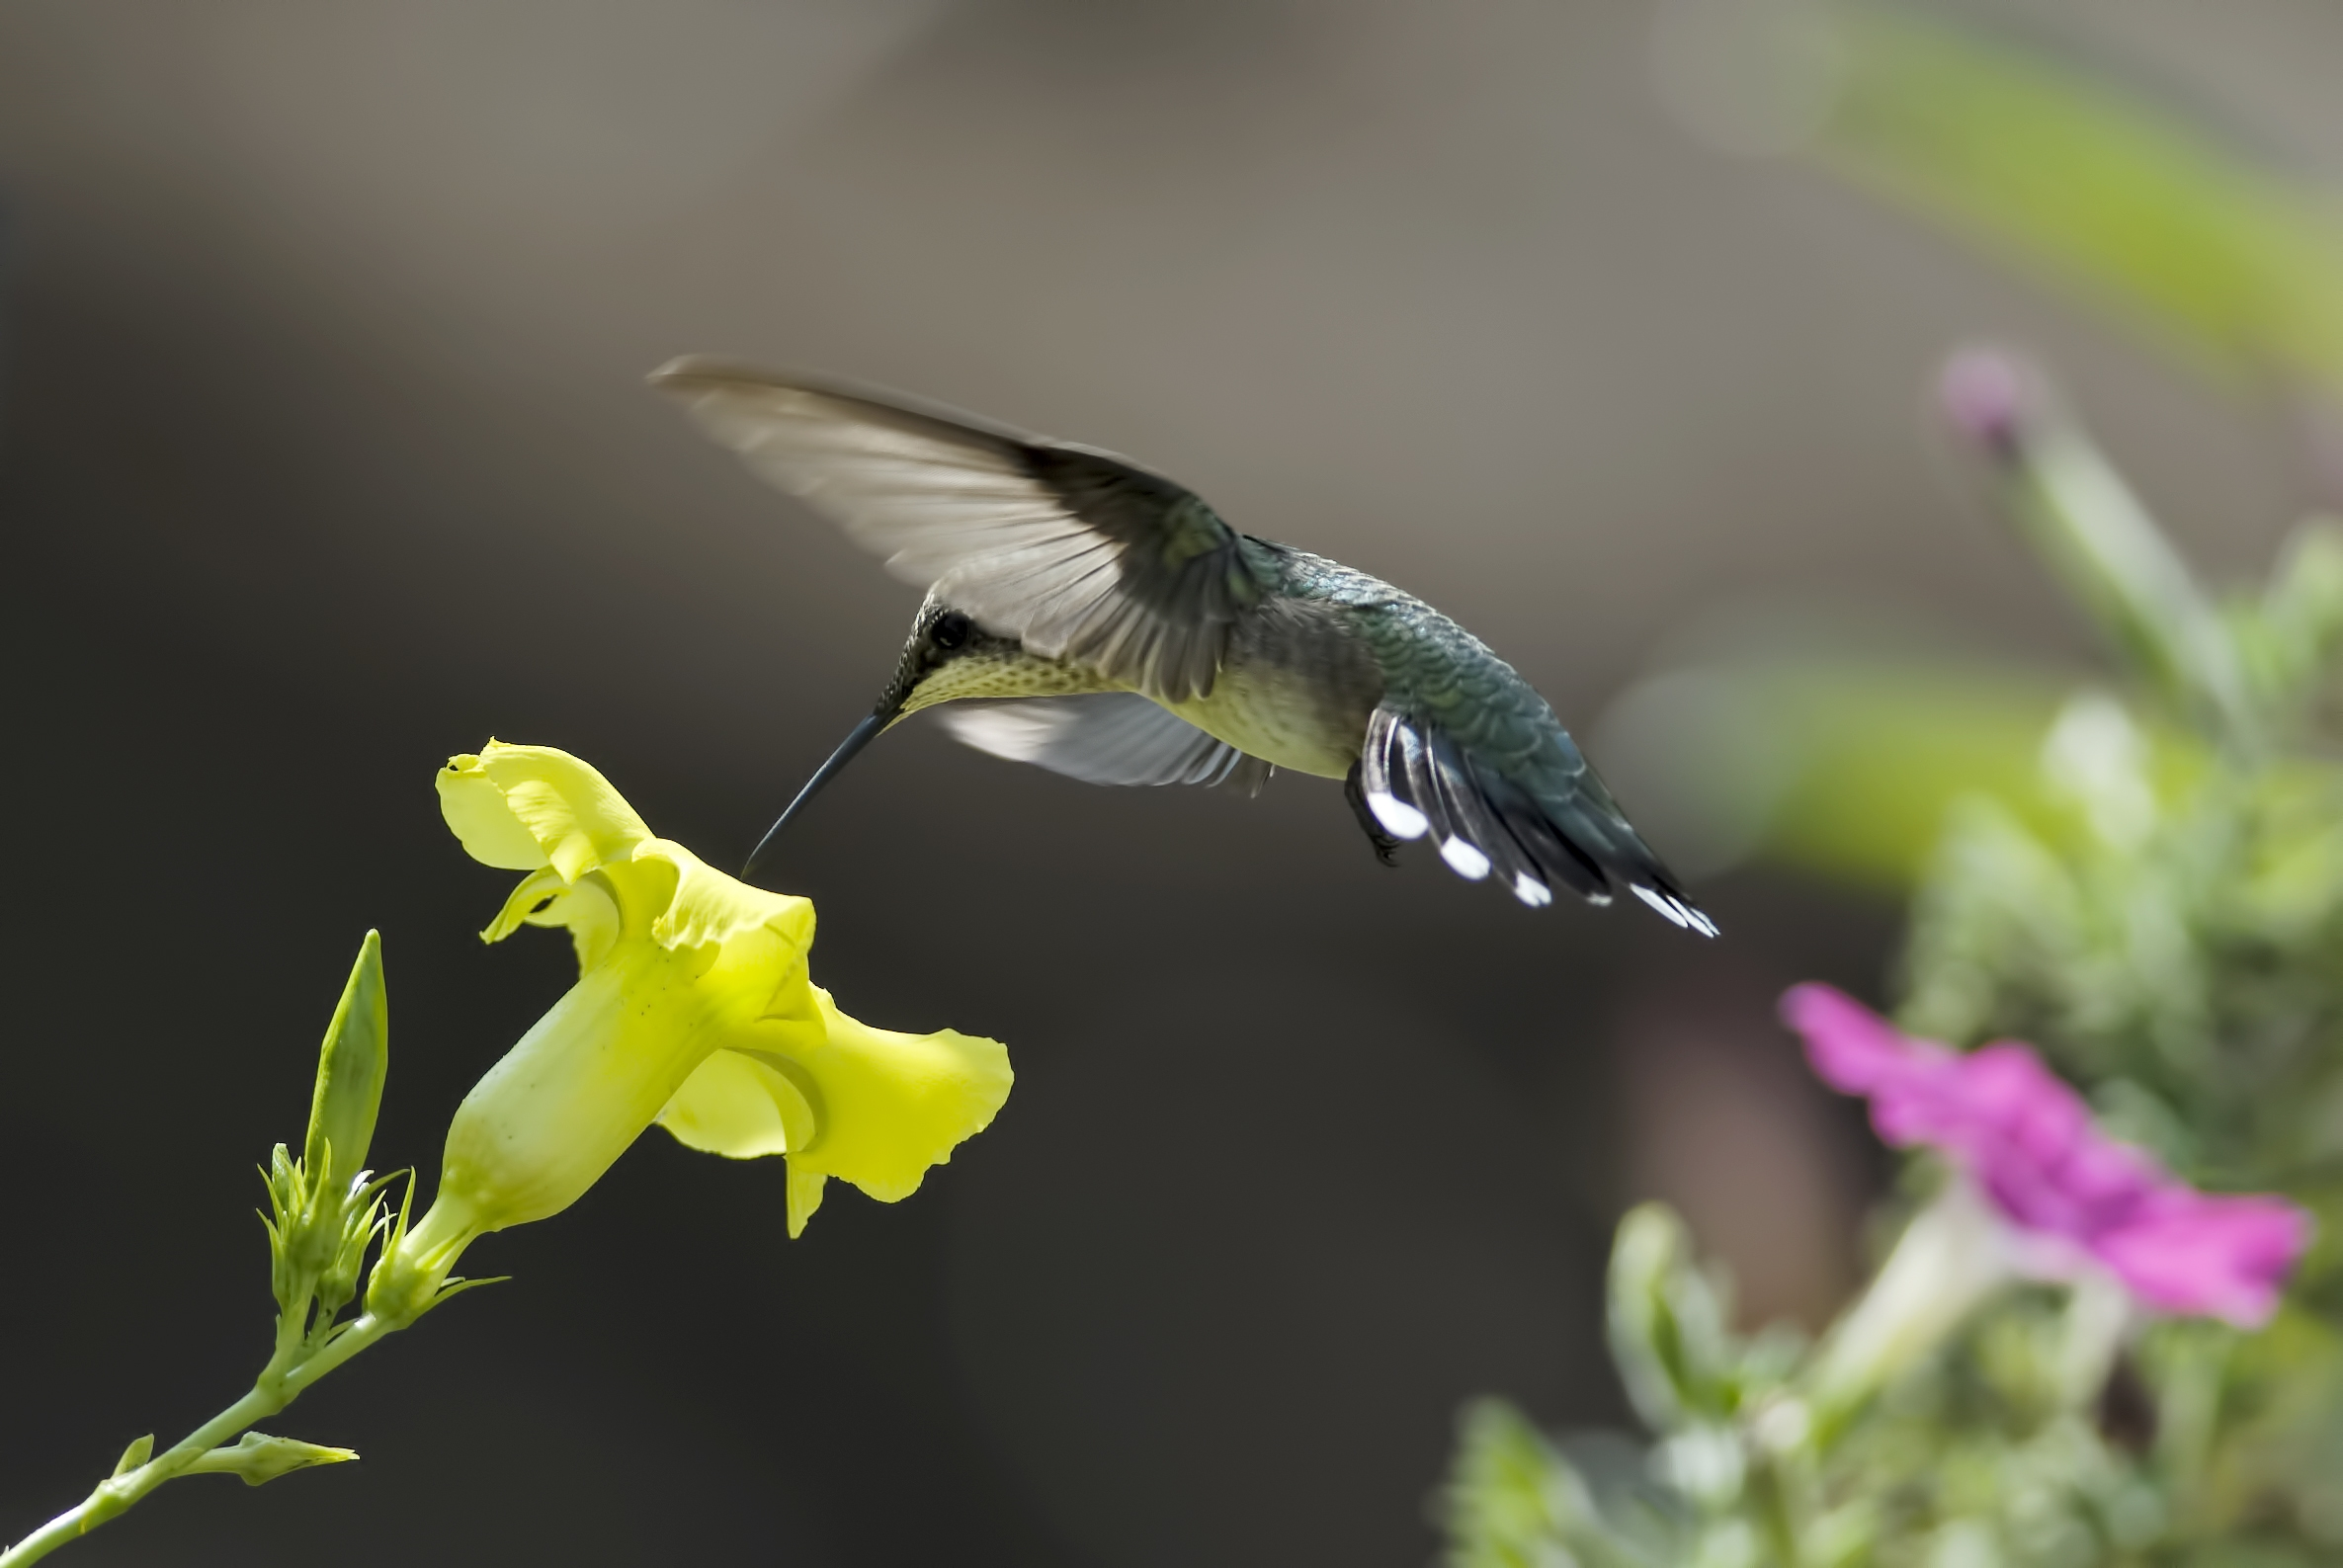 Hummingbird Full HD Wallpaper And Background Image